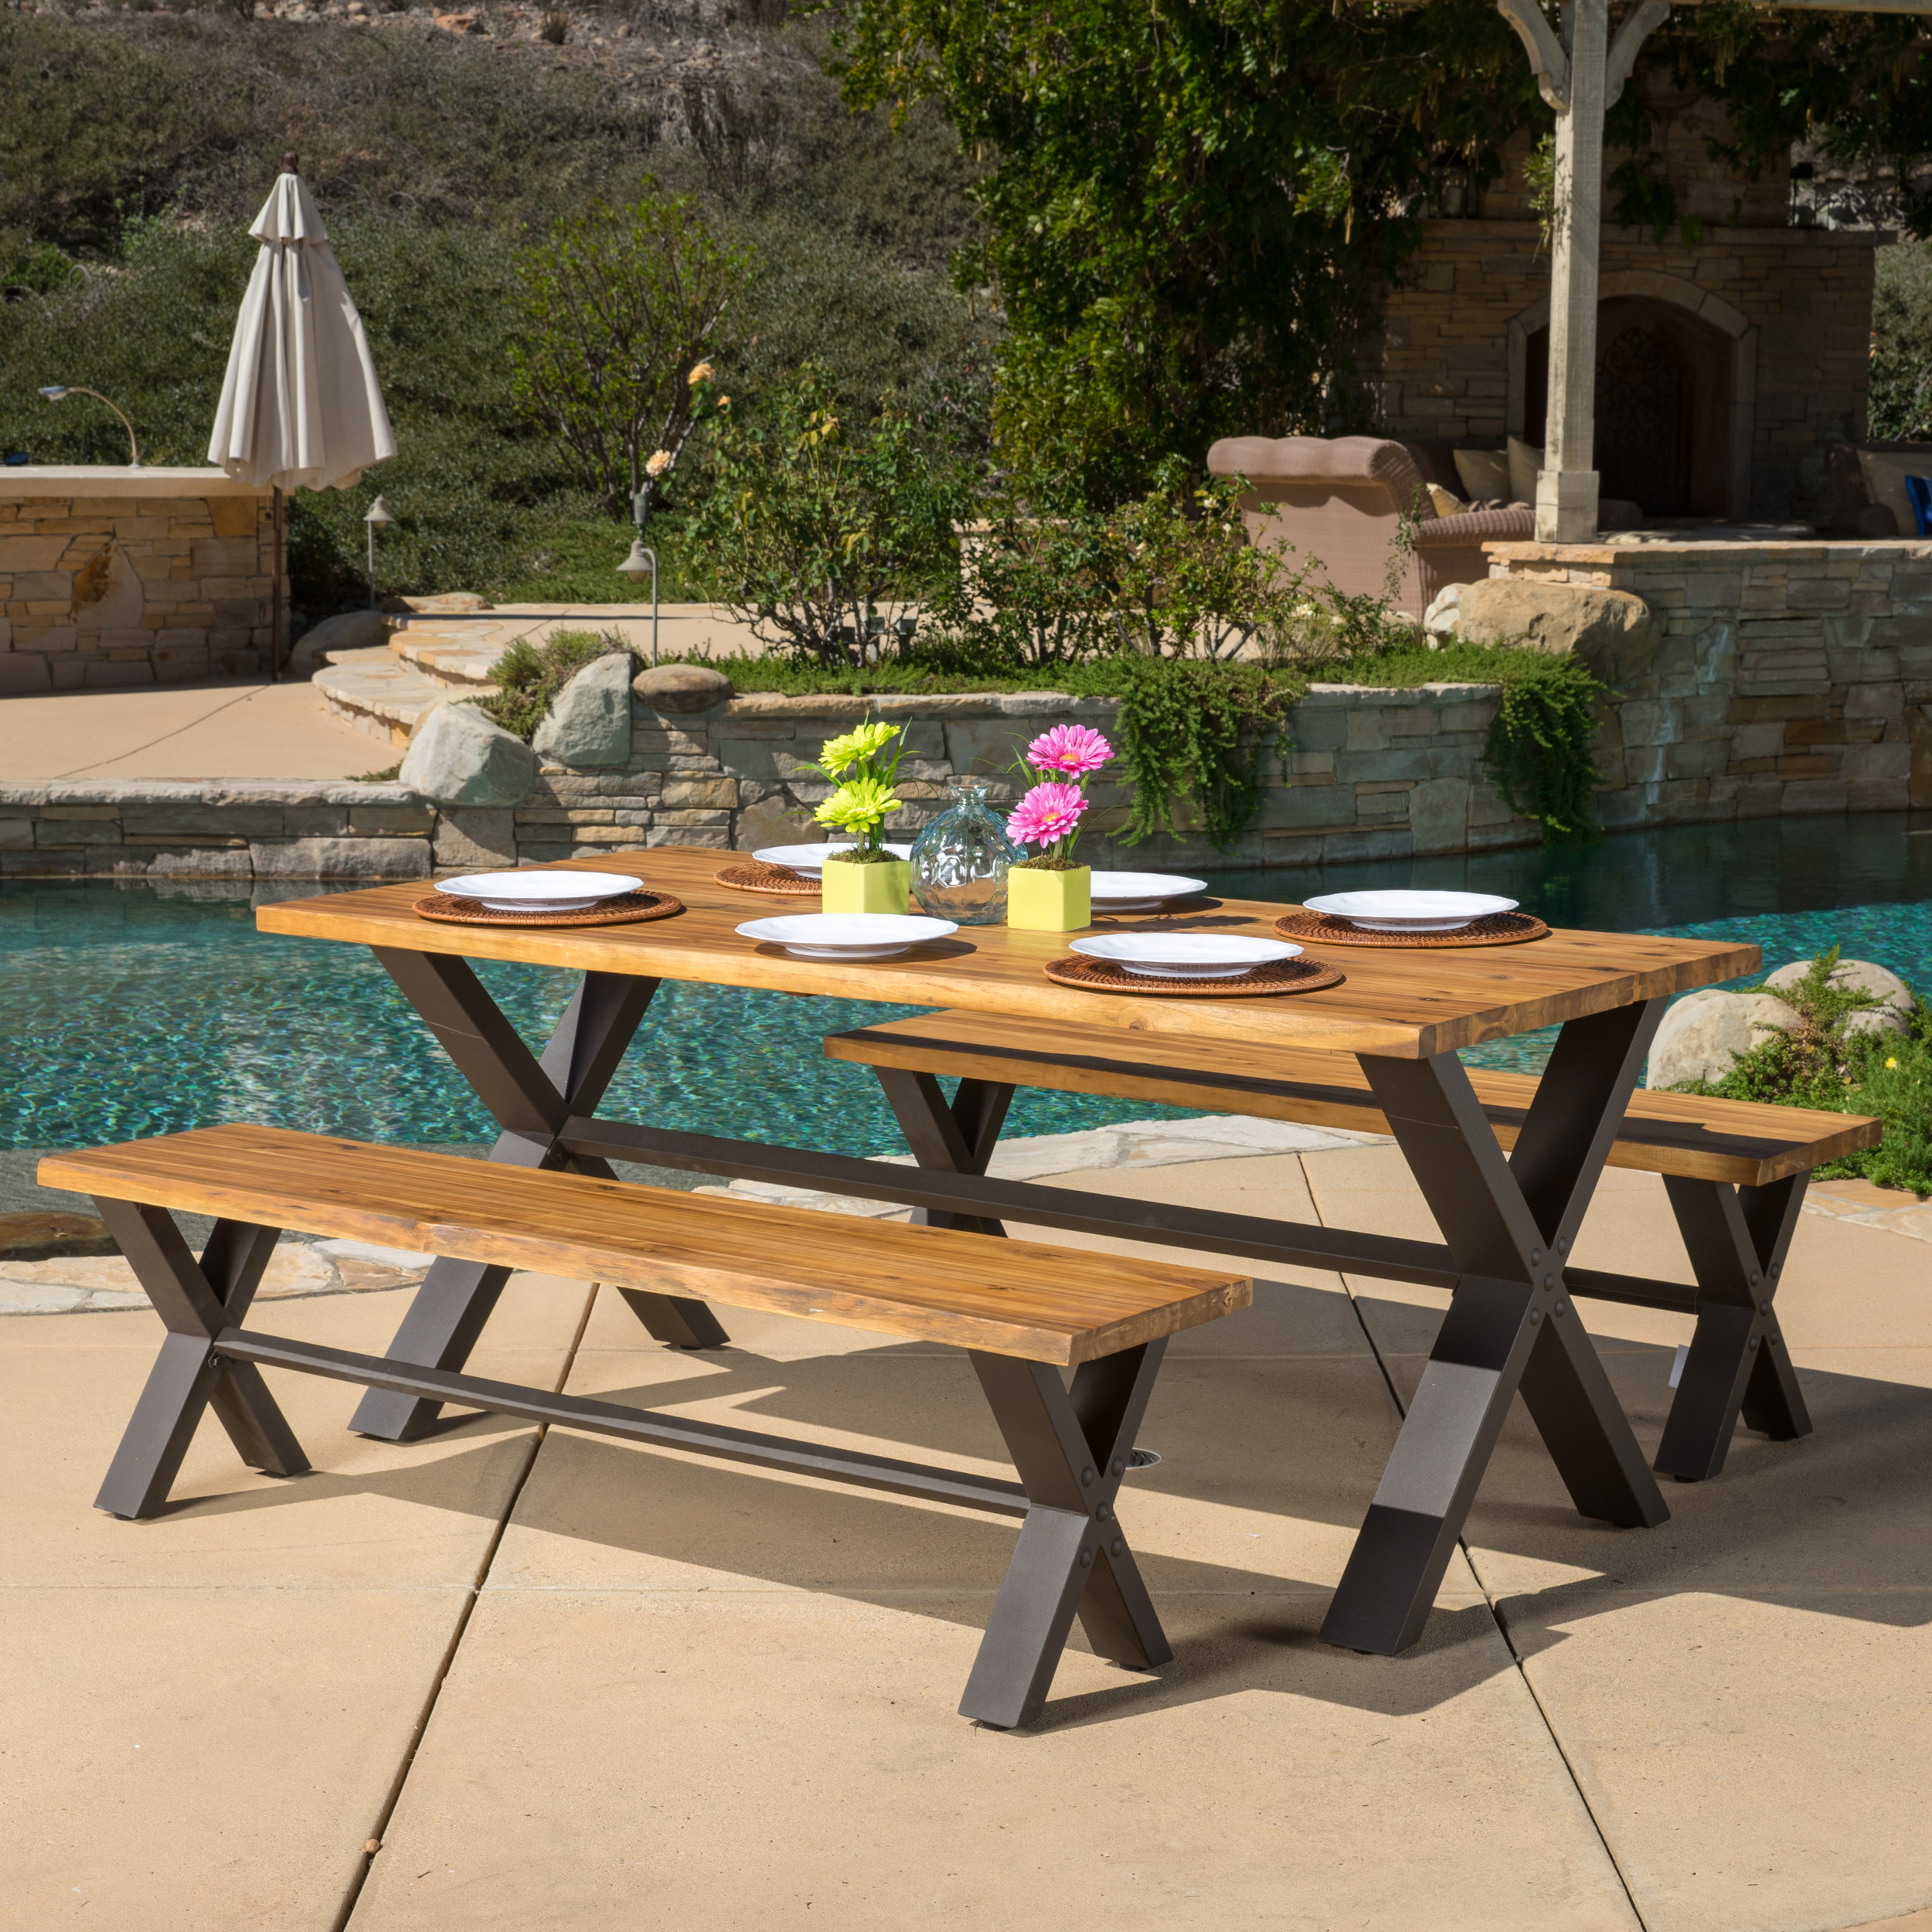 Myers 3 Piece Outdoor Acacia Wood Picnic Dining Set, Teak Finish with Rustic Metal